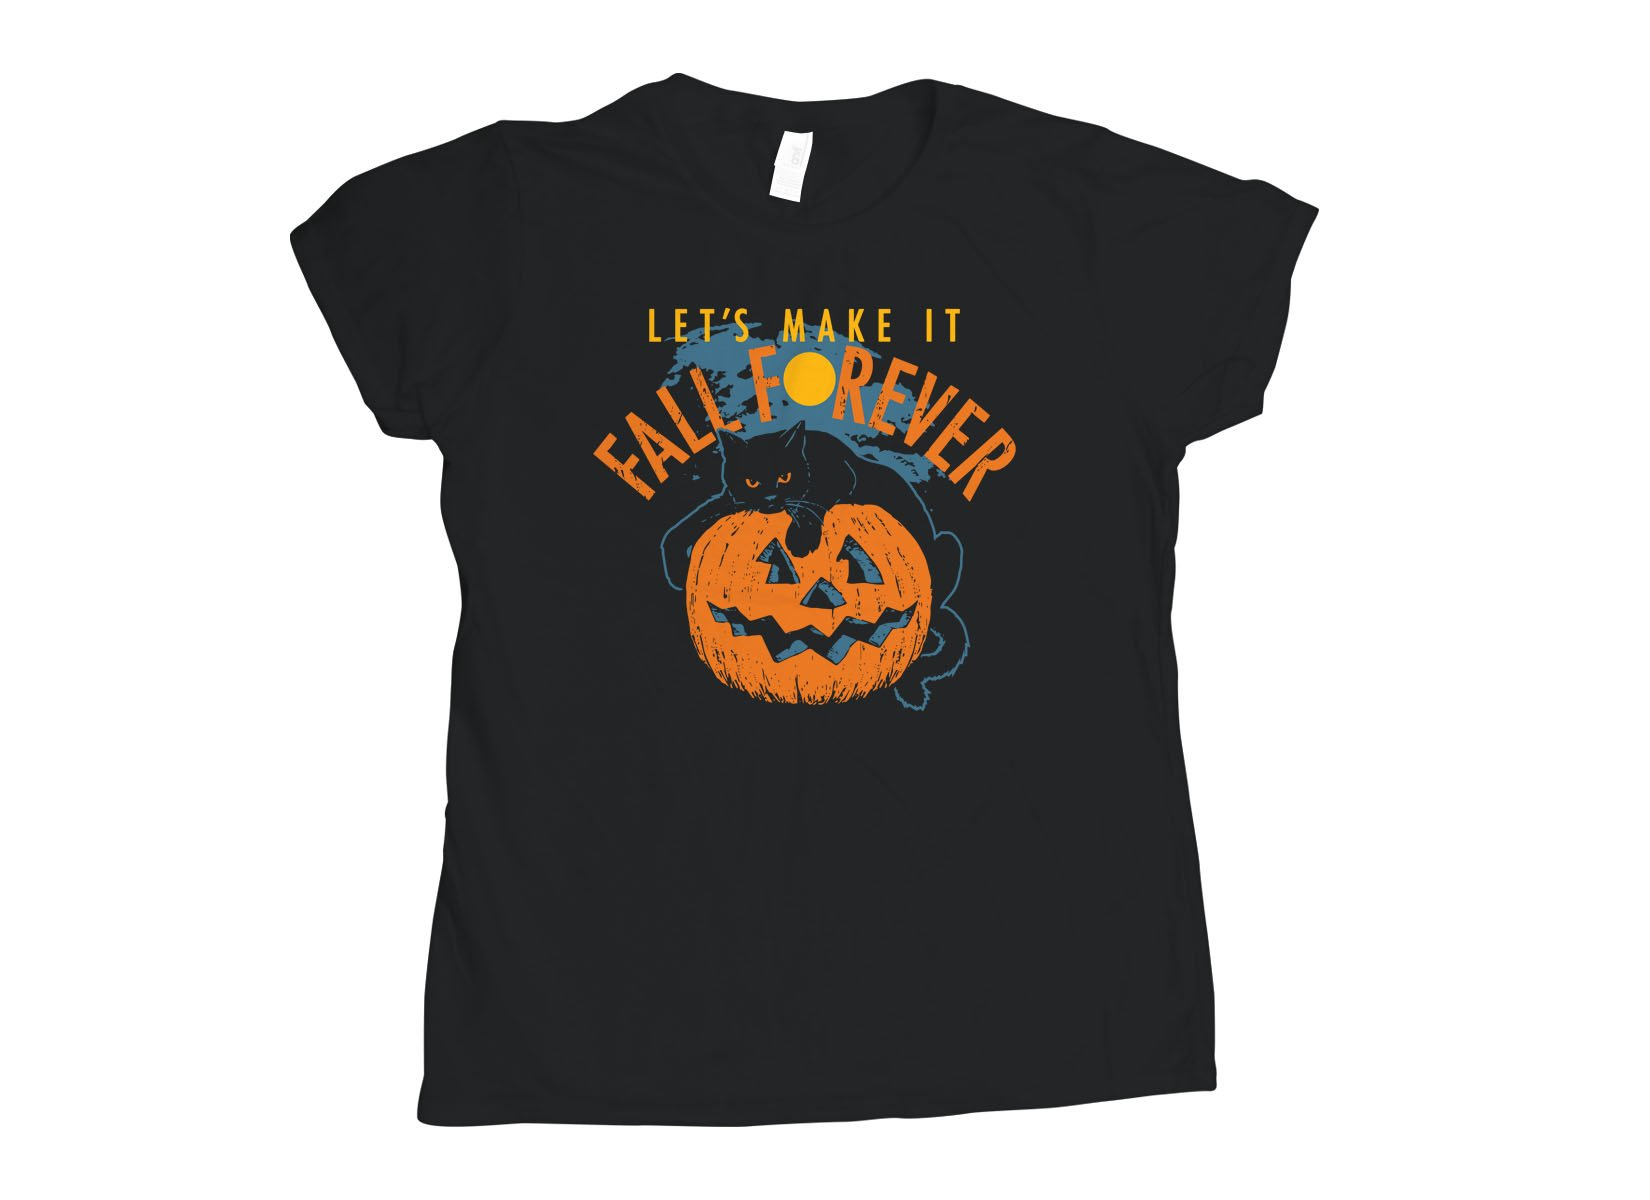 Fall Forever on Womens T-Shirt